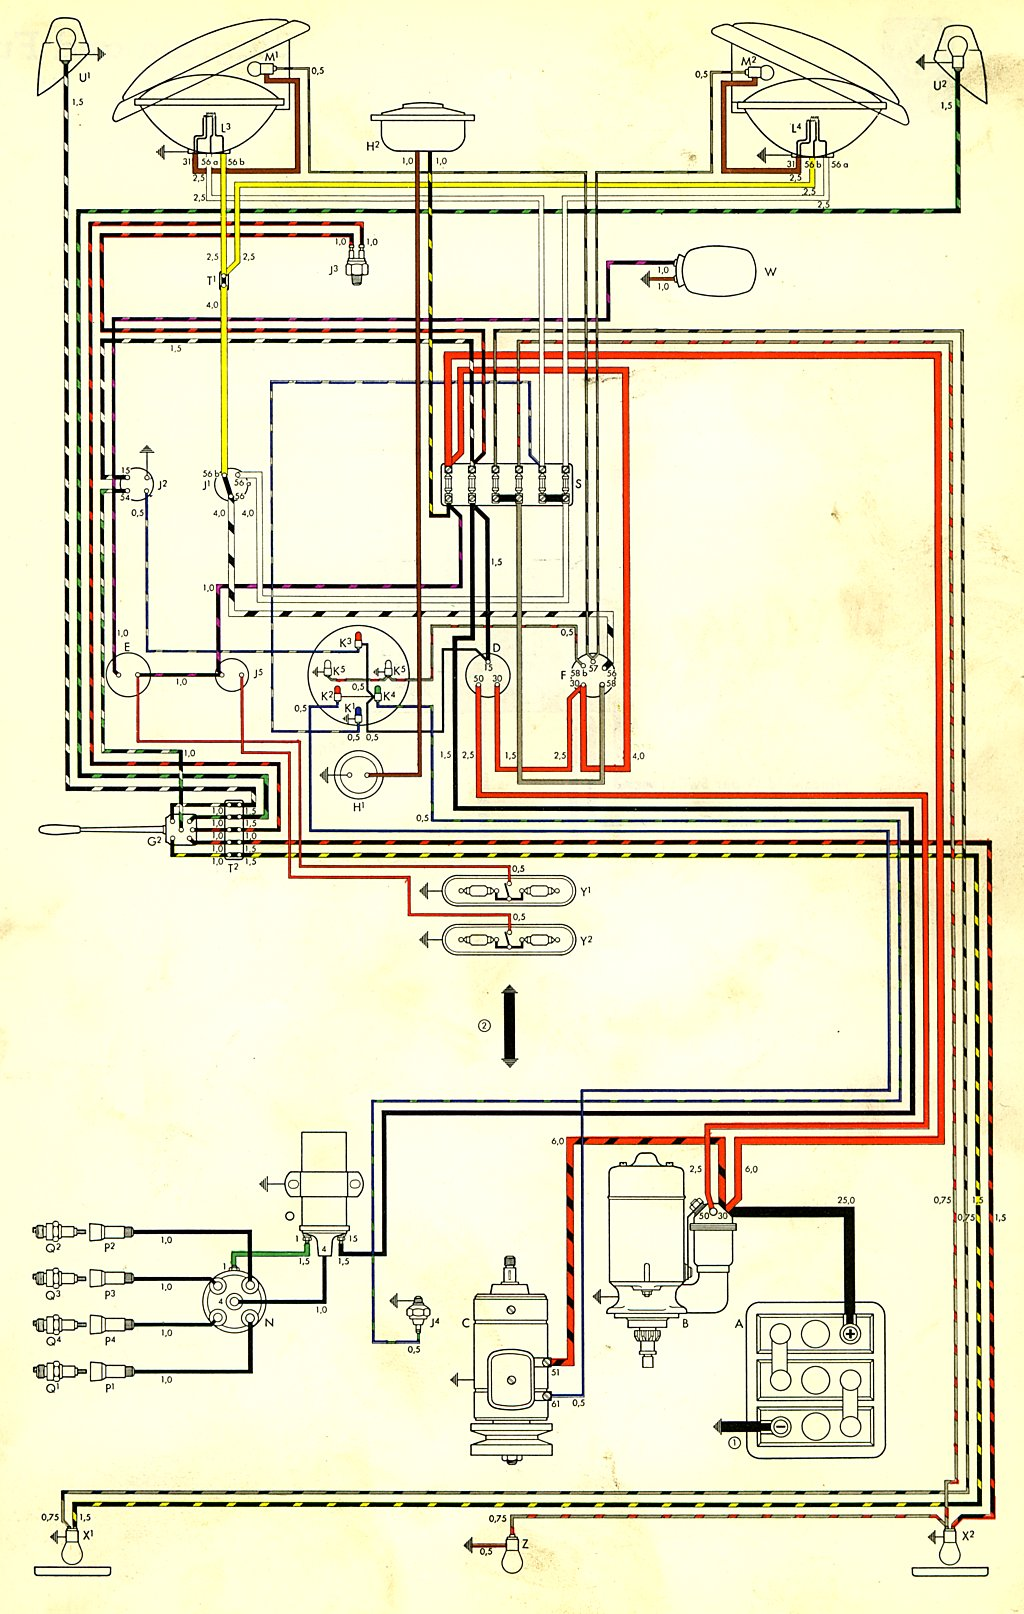 1966 vw bus wiring diagram wiring diagram thesamba com type 2 wiring diagrams rh thesamba com 1966 vw bus wiring diagram 1966 vw publicscrutiny